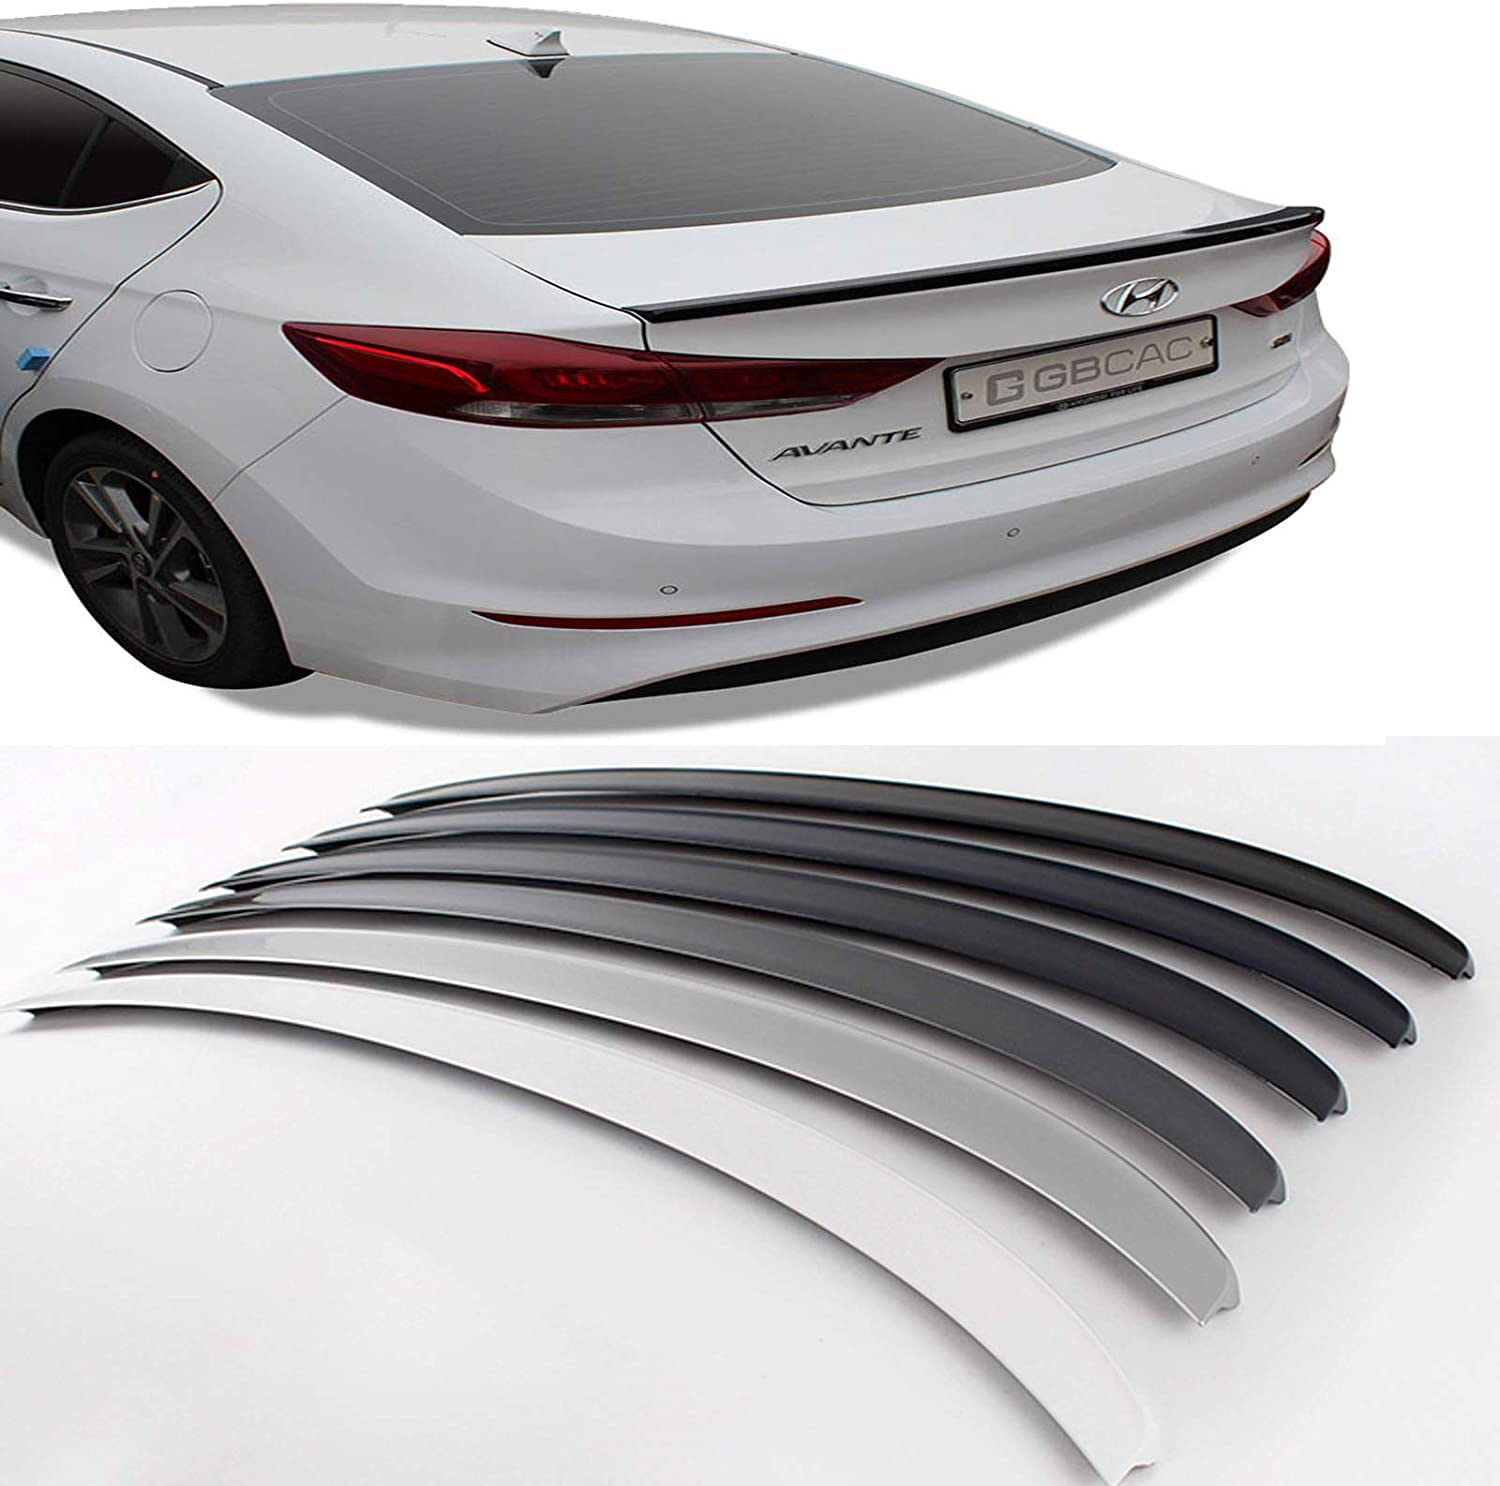 New Rear Trunk Wing Lip Spoiler Painted for Hyundai Azera 2012-2017